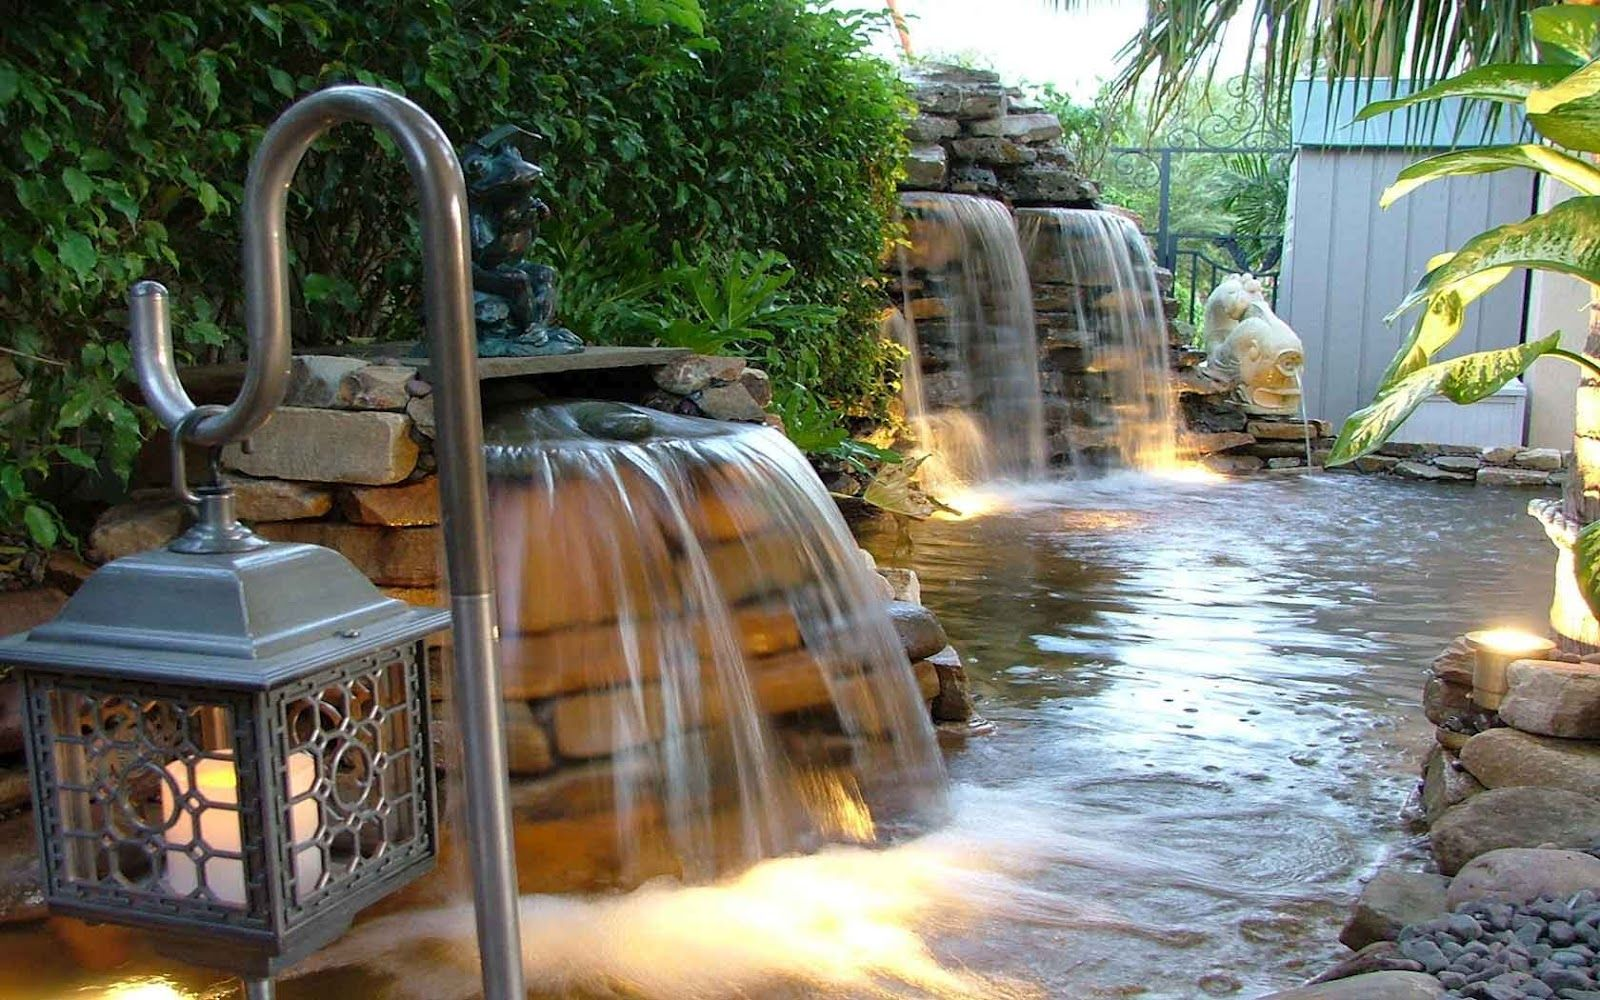 Awesome backyard koi ponds ideas with cool ponds for Koi pond quezon city